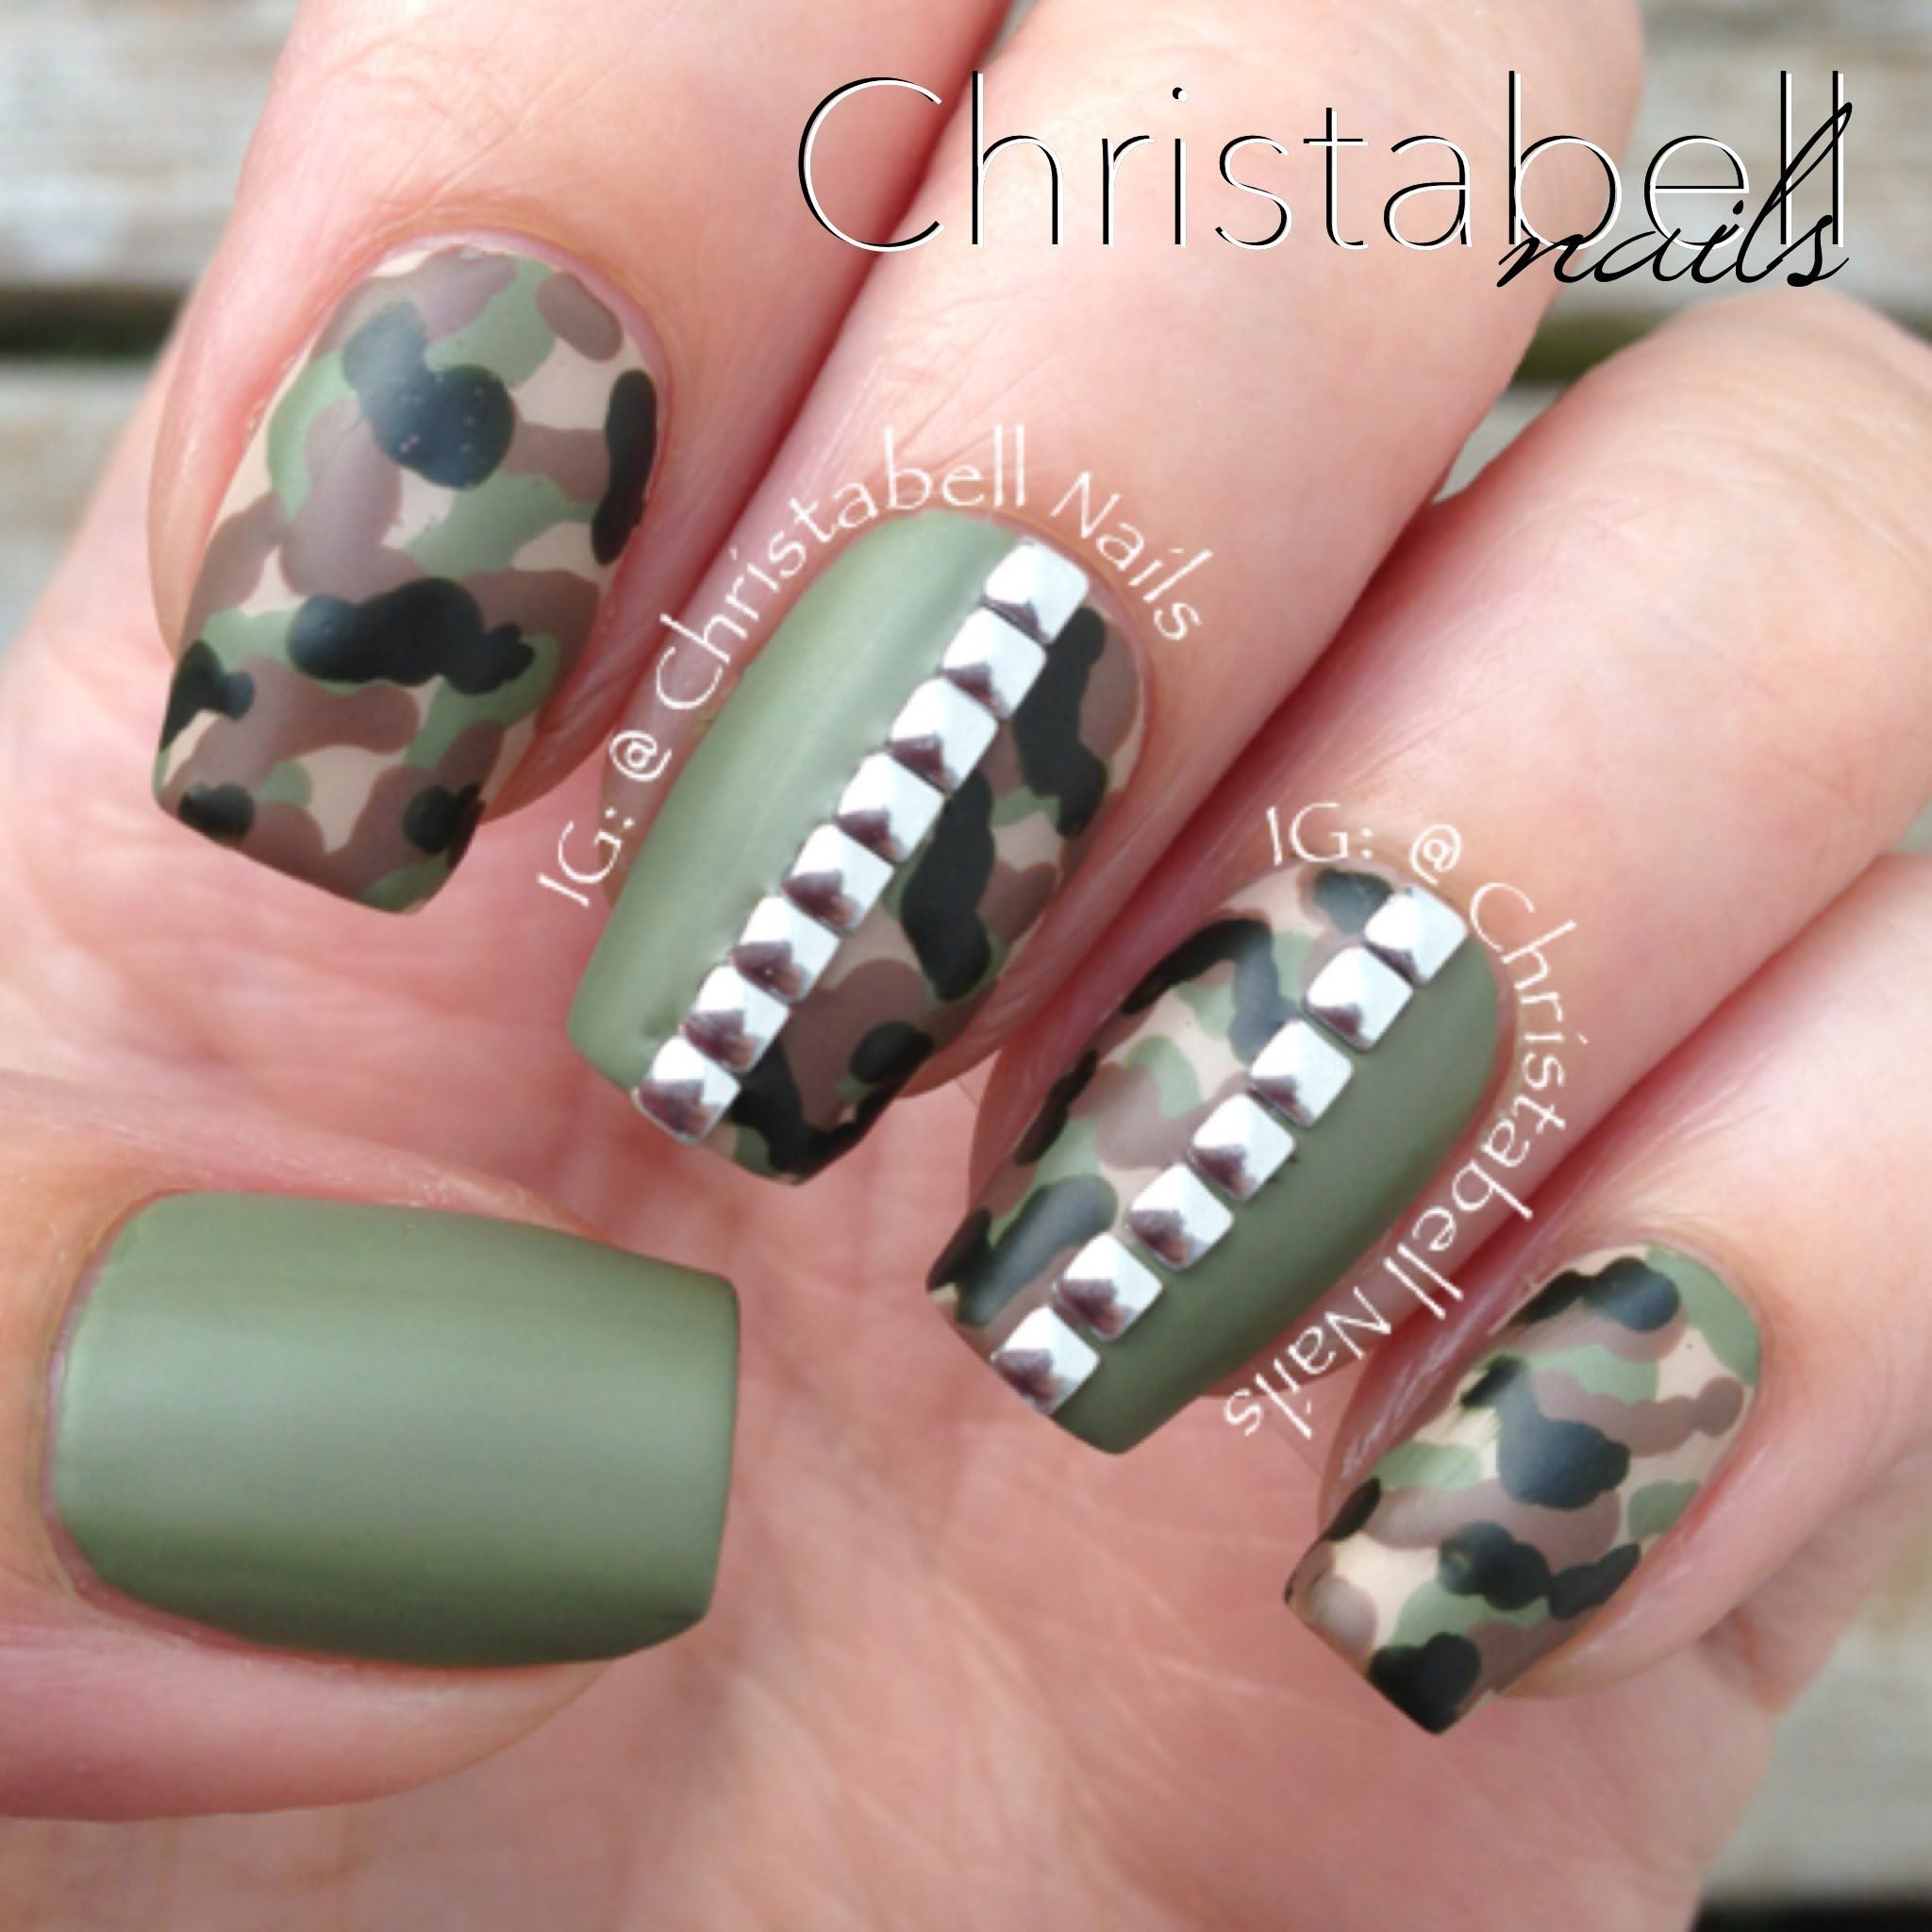 ChristabellNails Camo Nails Tutorial with Studs | Nails | Pinterest ...